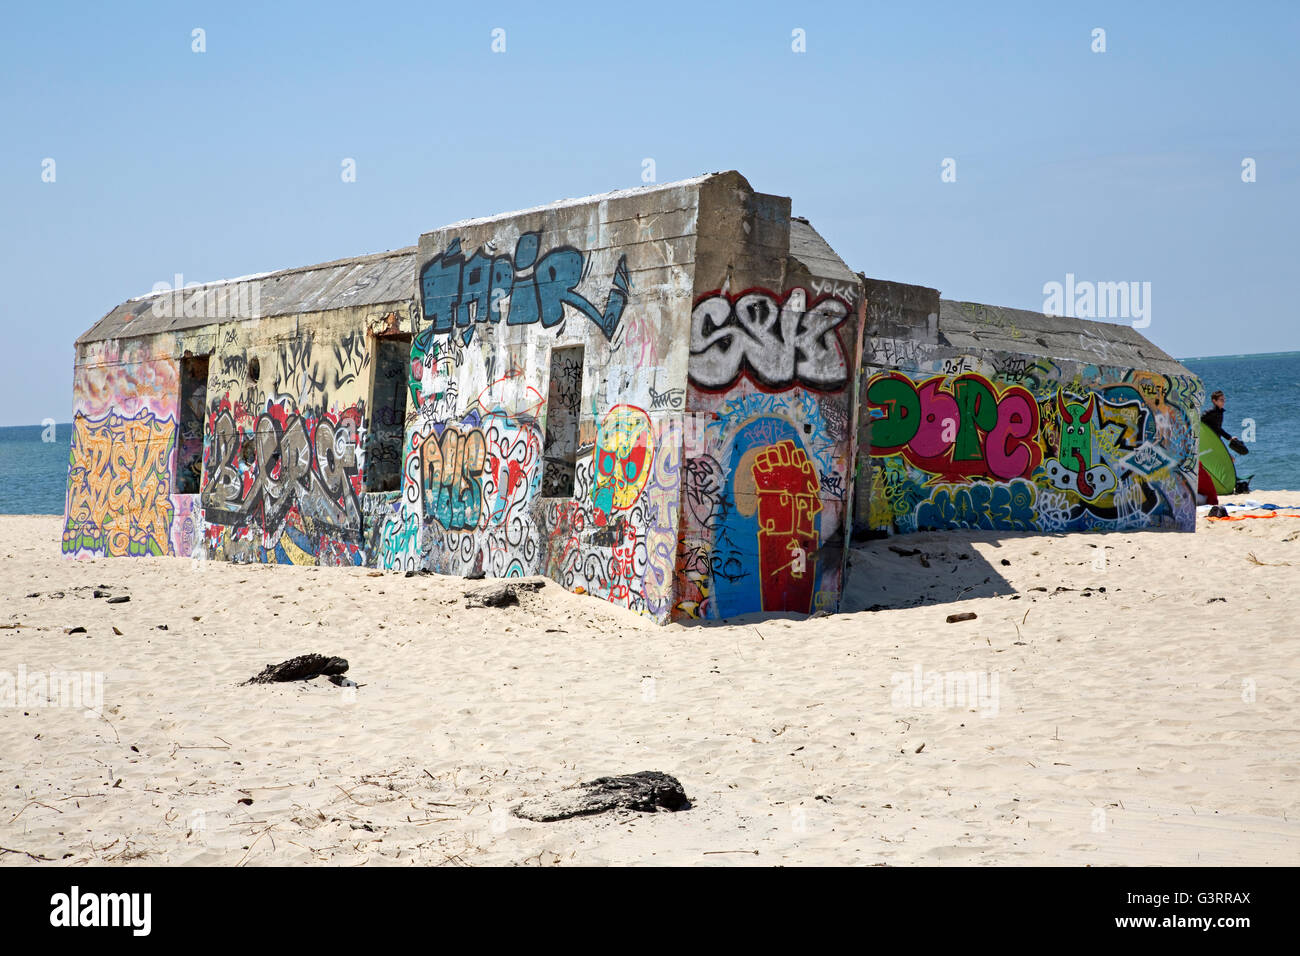 Coastal fortifications covered in graffiti Dune of Pyla Southern France - Stock Image